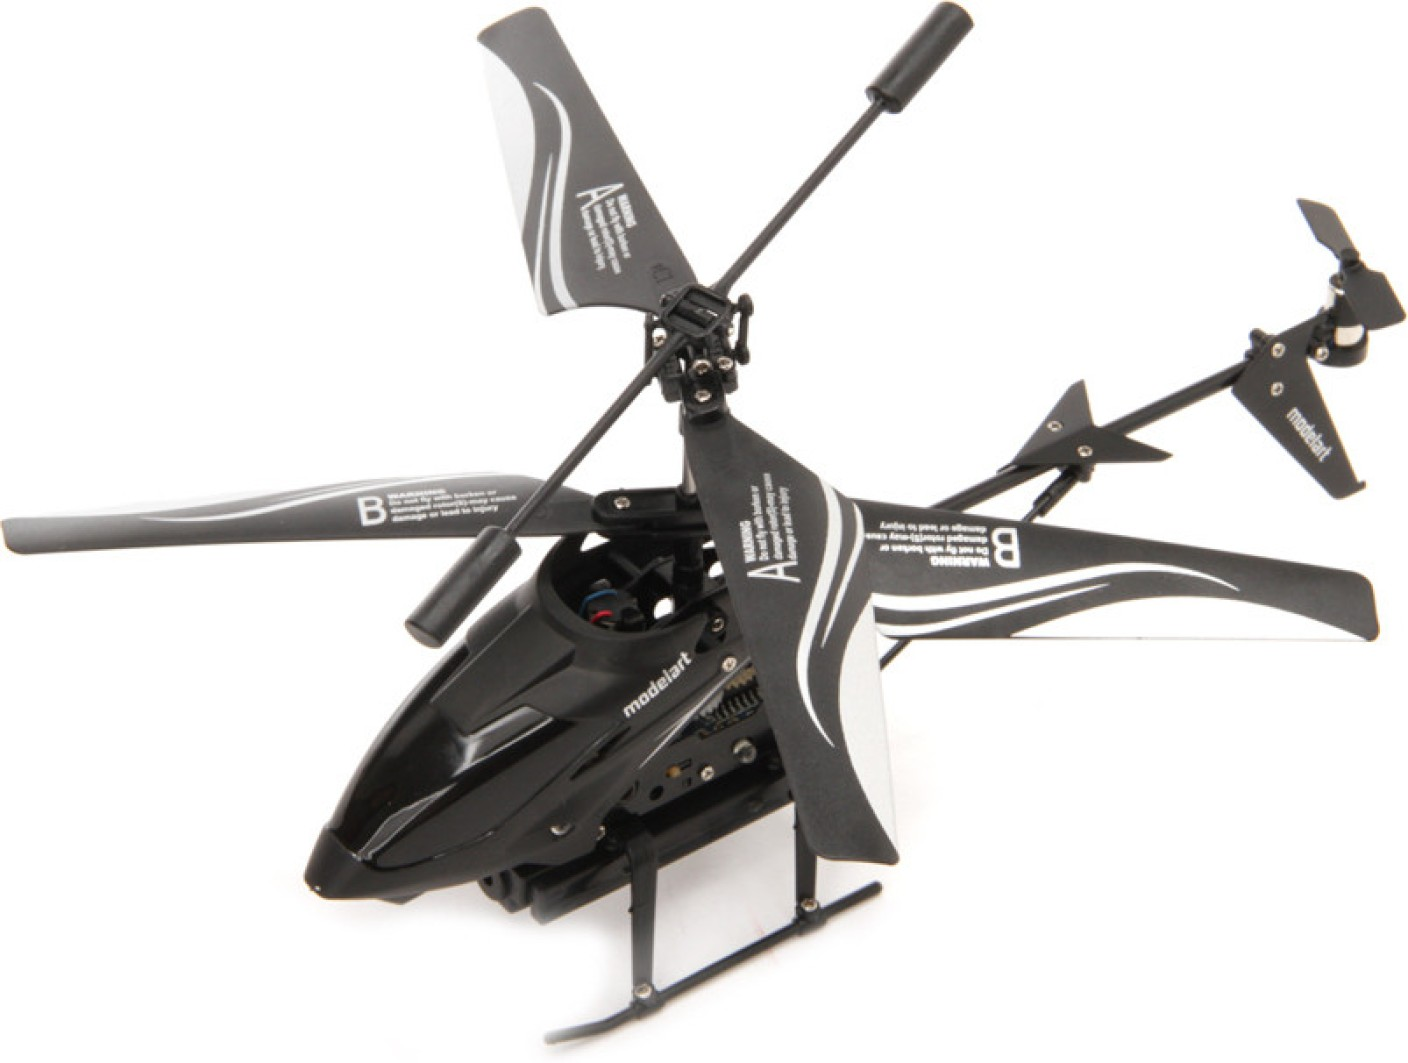 control remote helicopter with Itmdg5g7mx9ma2vh on 20000mah Battery Power Bank Problem Solved as well Rc car clipart together with Collectiontdwn Tech 9 Machine Gun besides 600mm Fiberglass Rotor Blade RC Helicopter together with 6231 F.